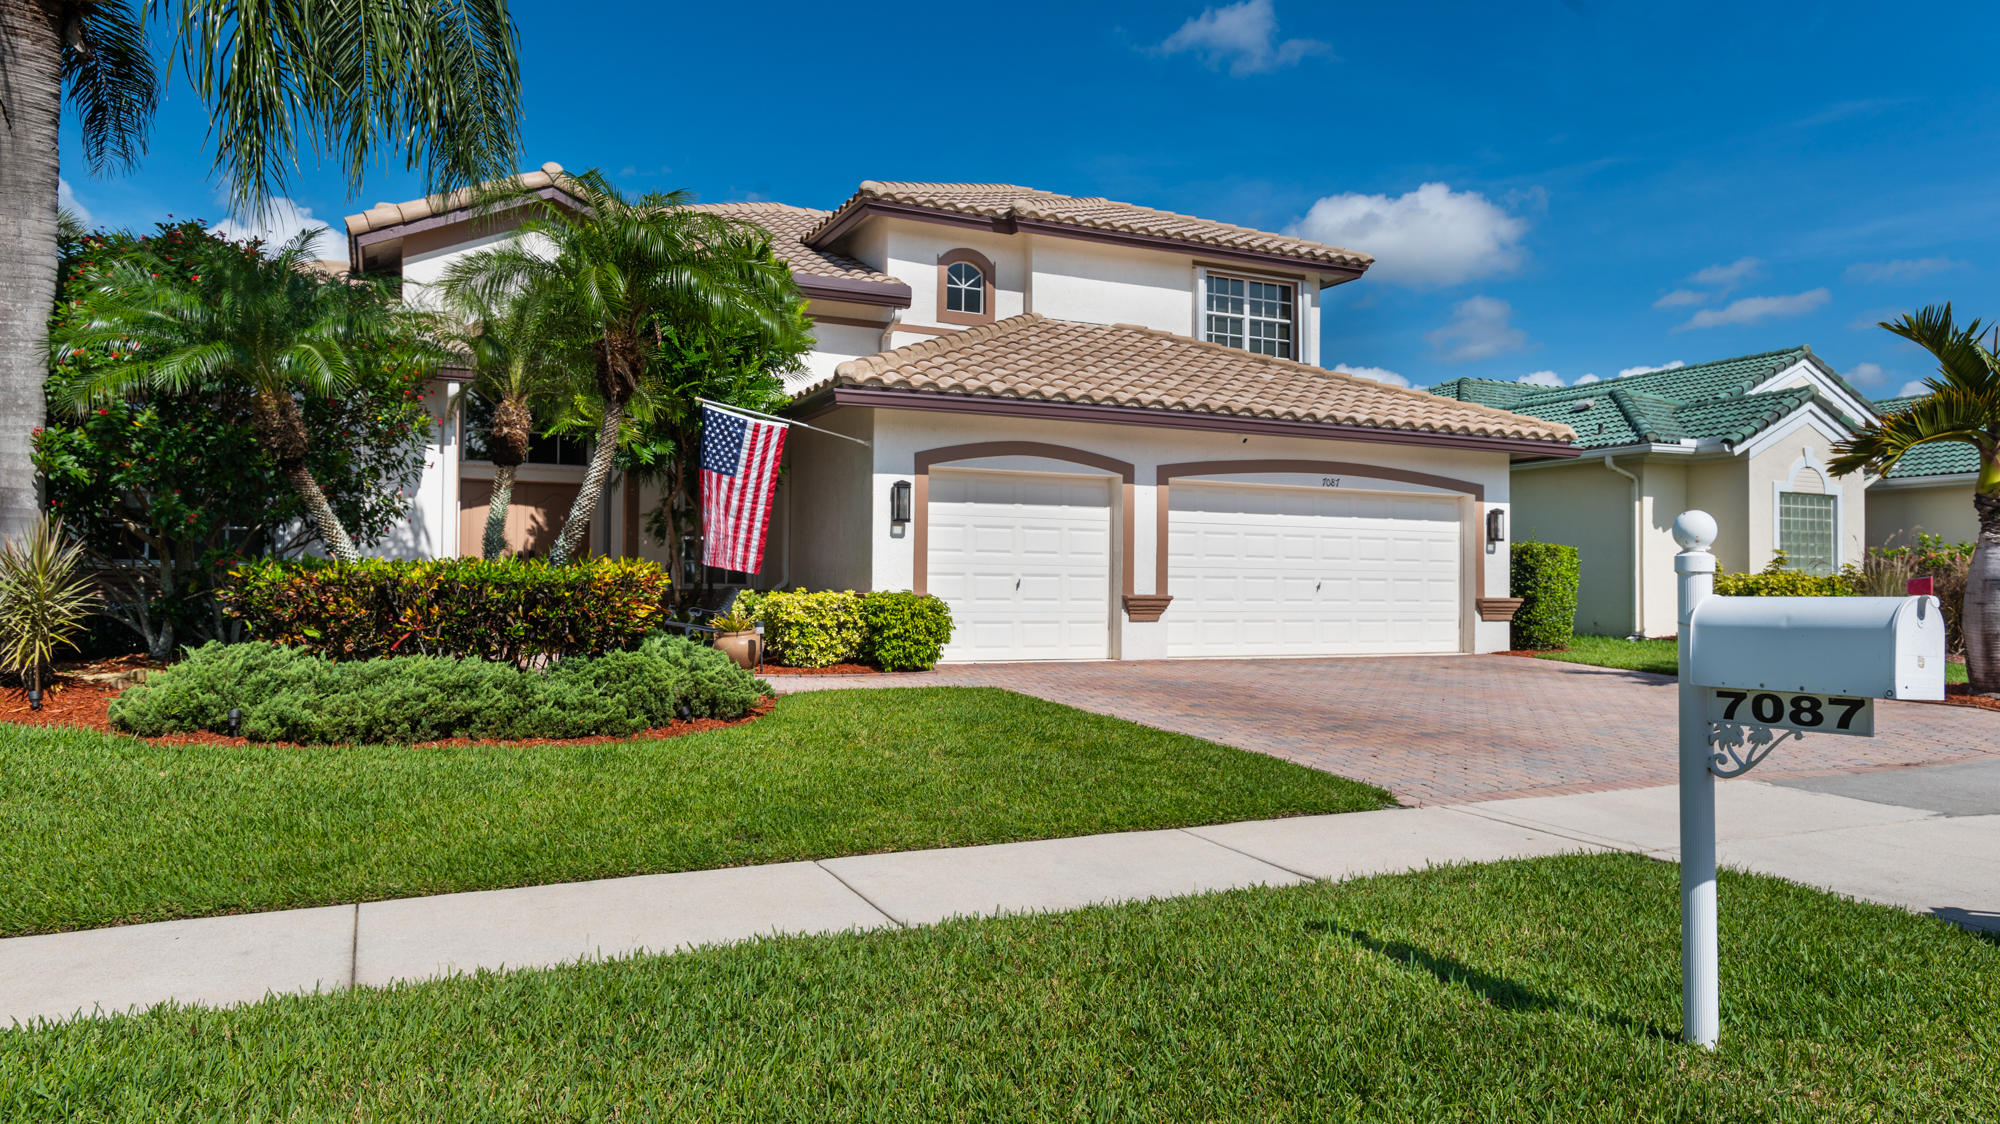 Home for sale in Sterling Cove Lake Worth Florida